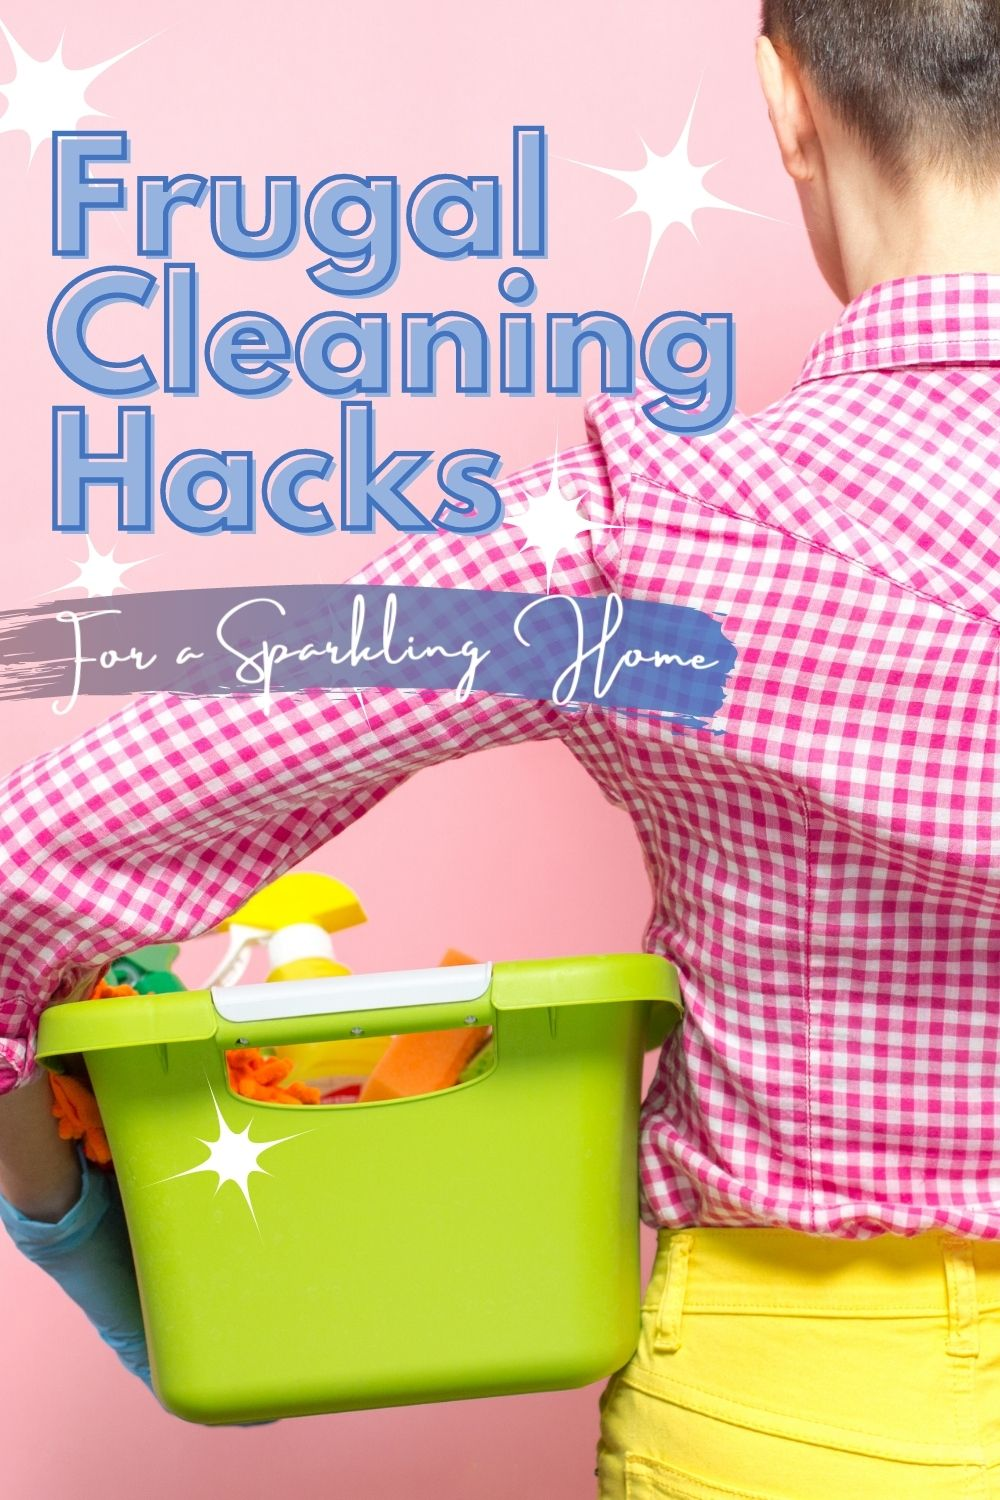 12 Frugal Cleaning Hacks for a Sparkling Home